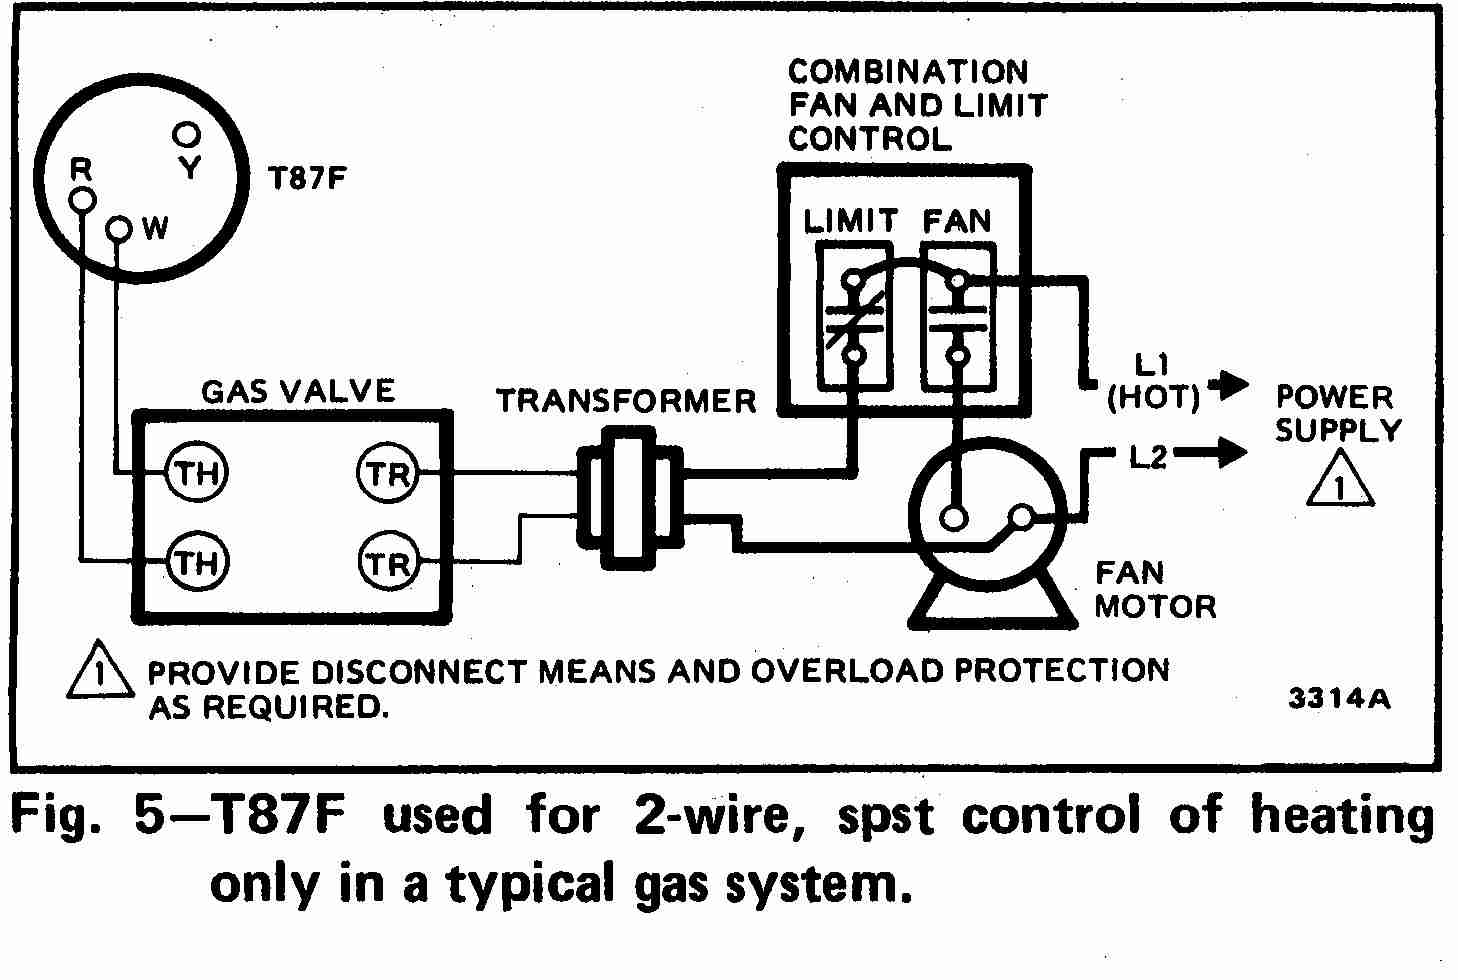 TT_T87F_0002_2Wg_DJF dayton thermostat wiring diagram rv furnace wiring diagrams LuxPro Thermostat Manual at cos-gaming.co